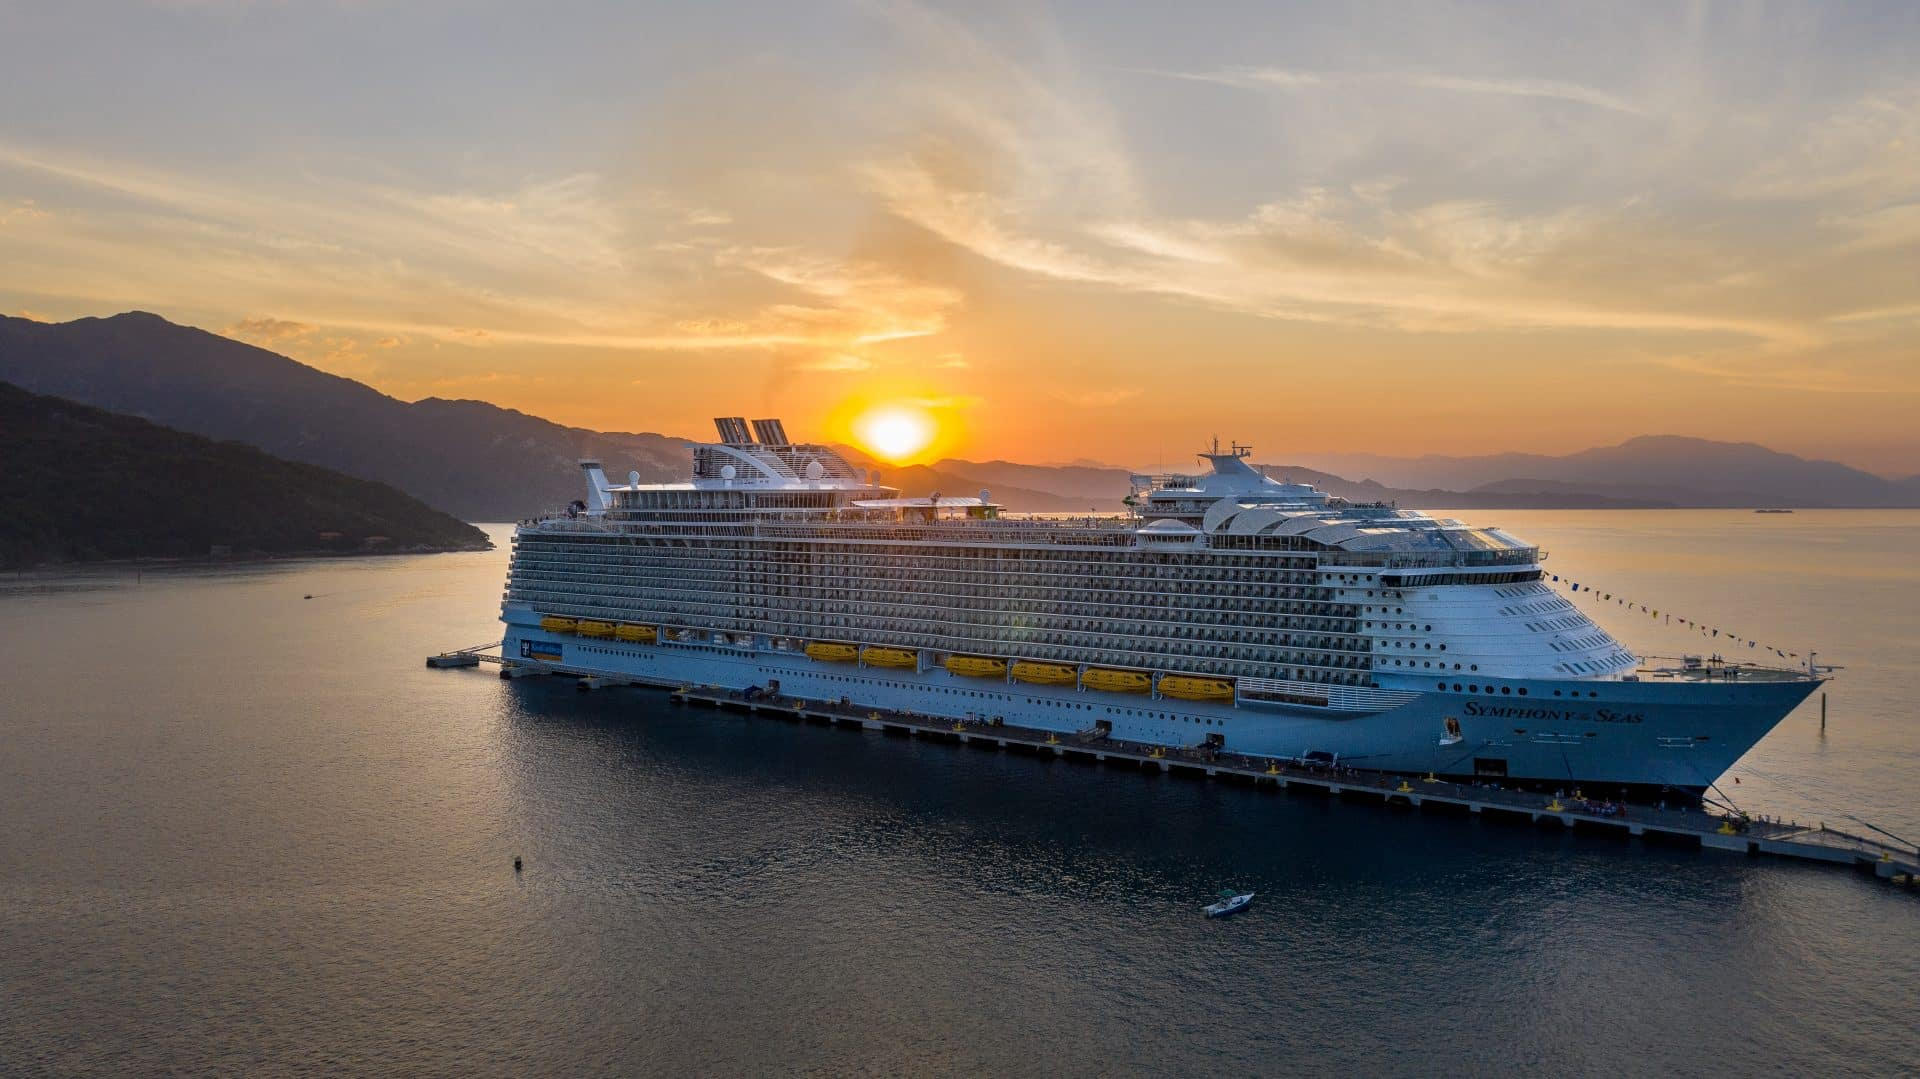 Caribbean Cruise 2020.The 7 Best Caribbean Cruise Itineraries In 2020 Big 7 Travel